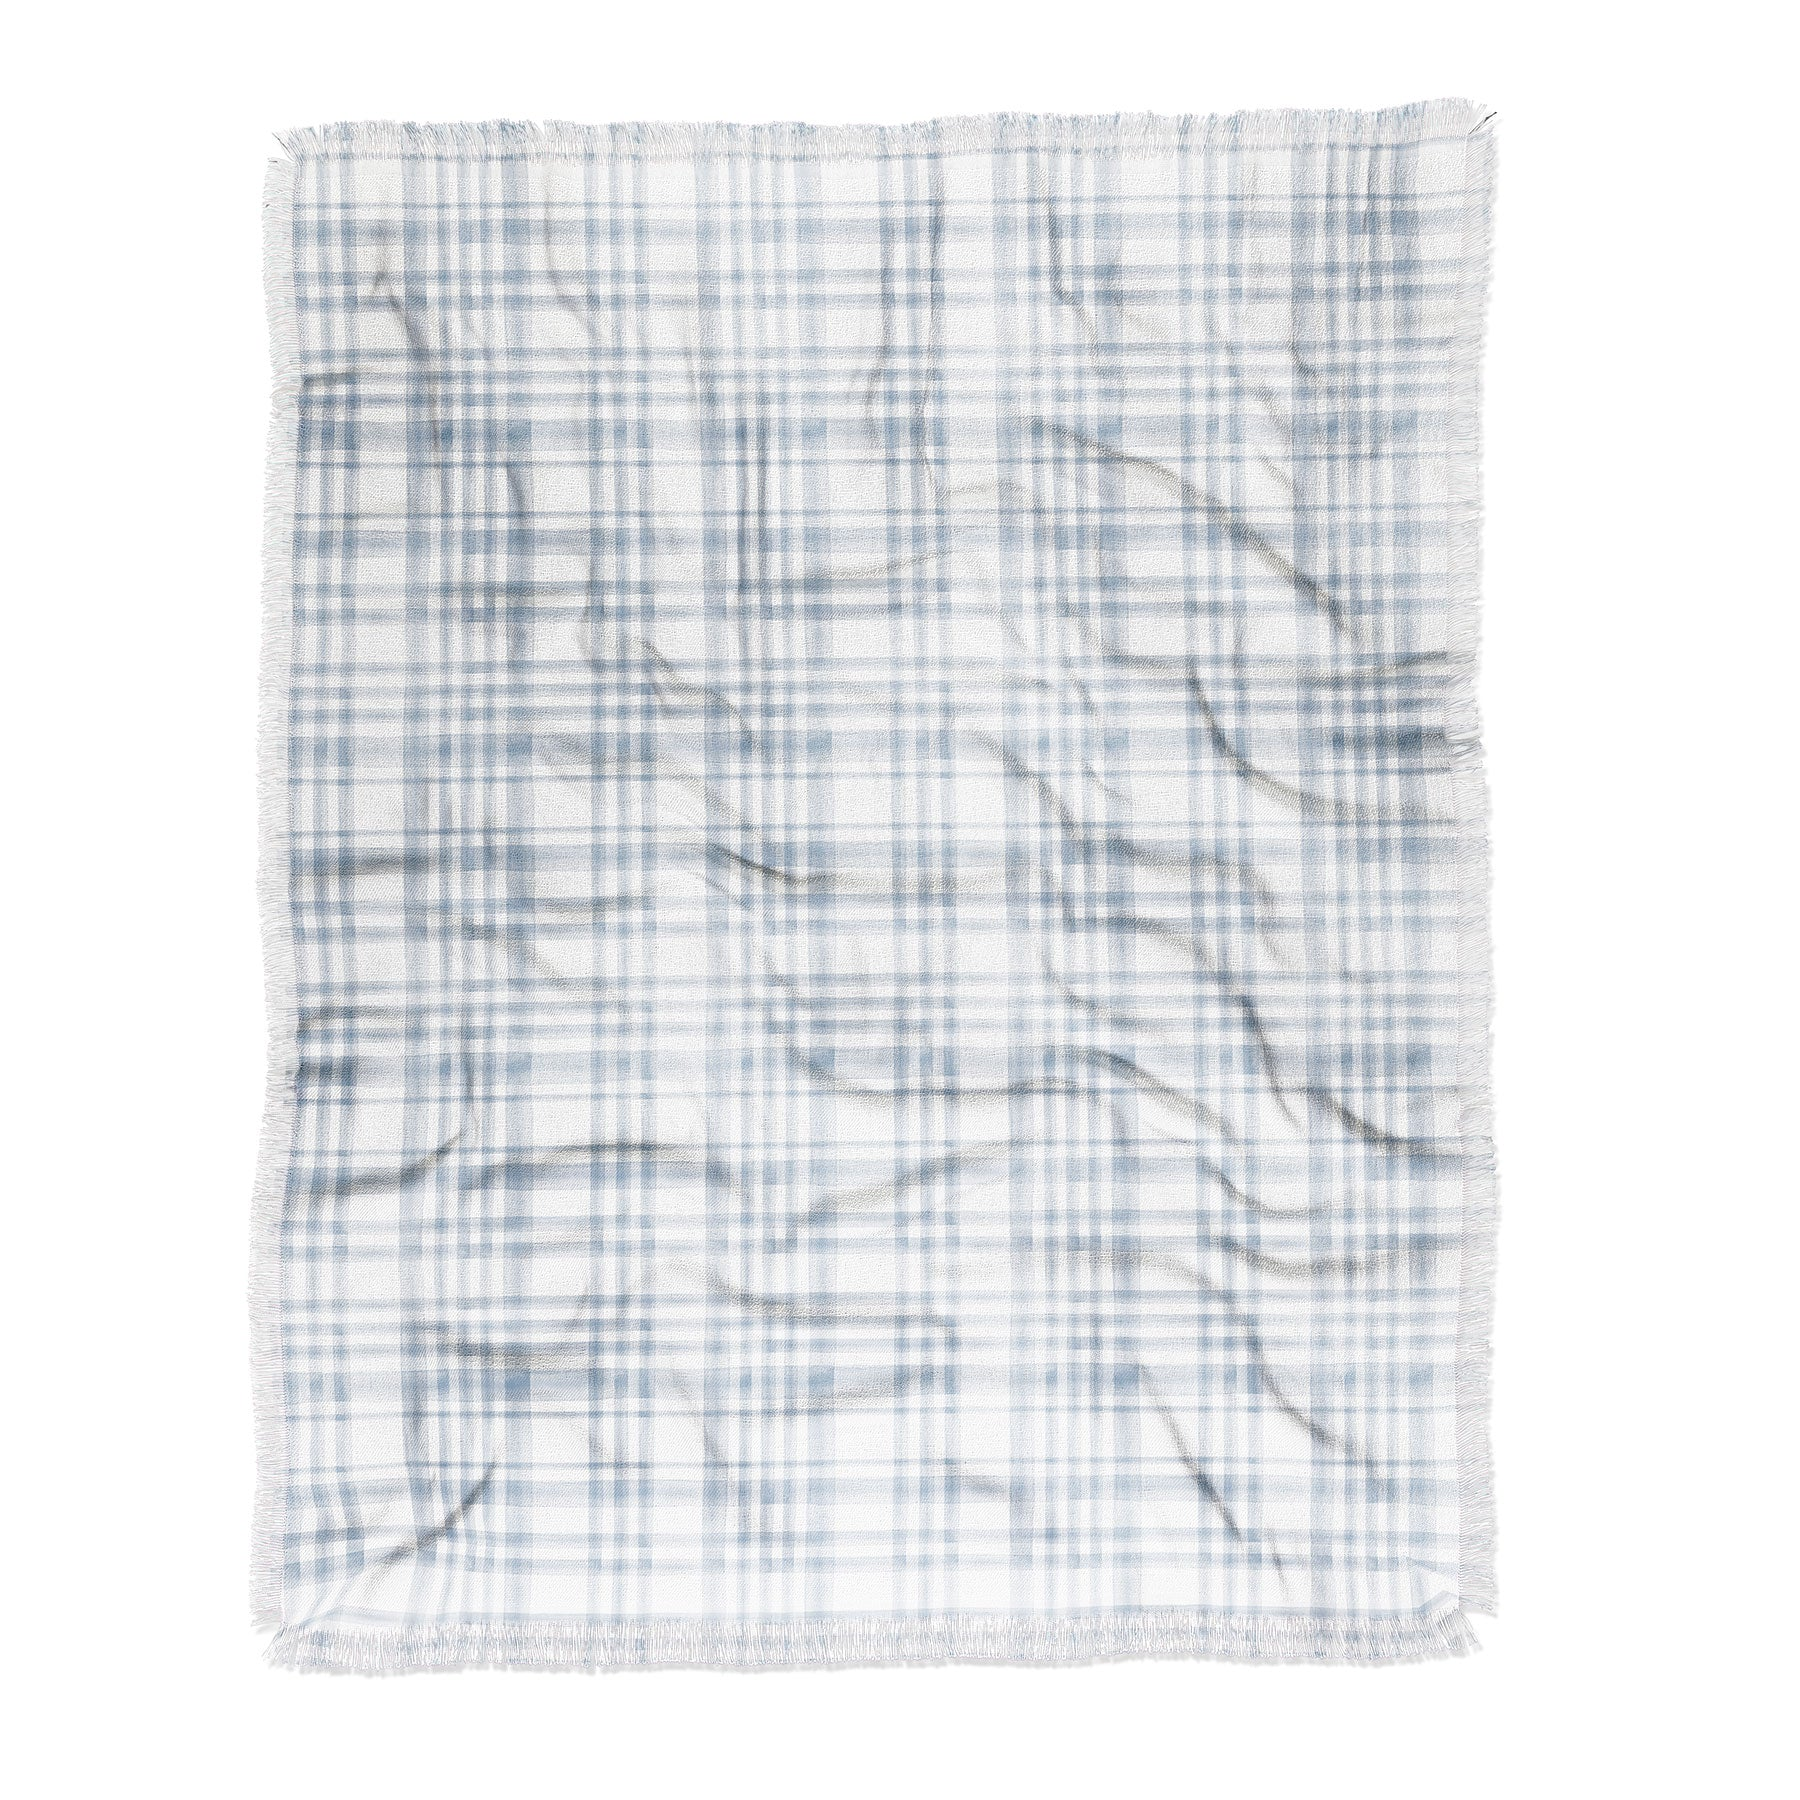 Little Arrow Design Co Winter Watercolor Plaid Blue Throw Blanket